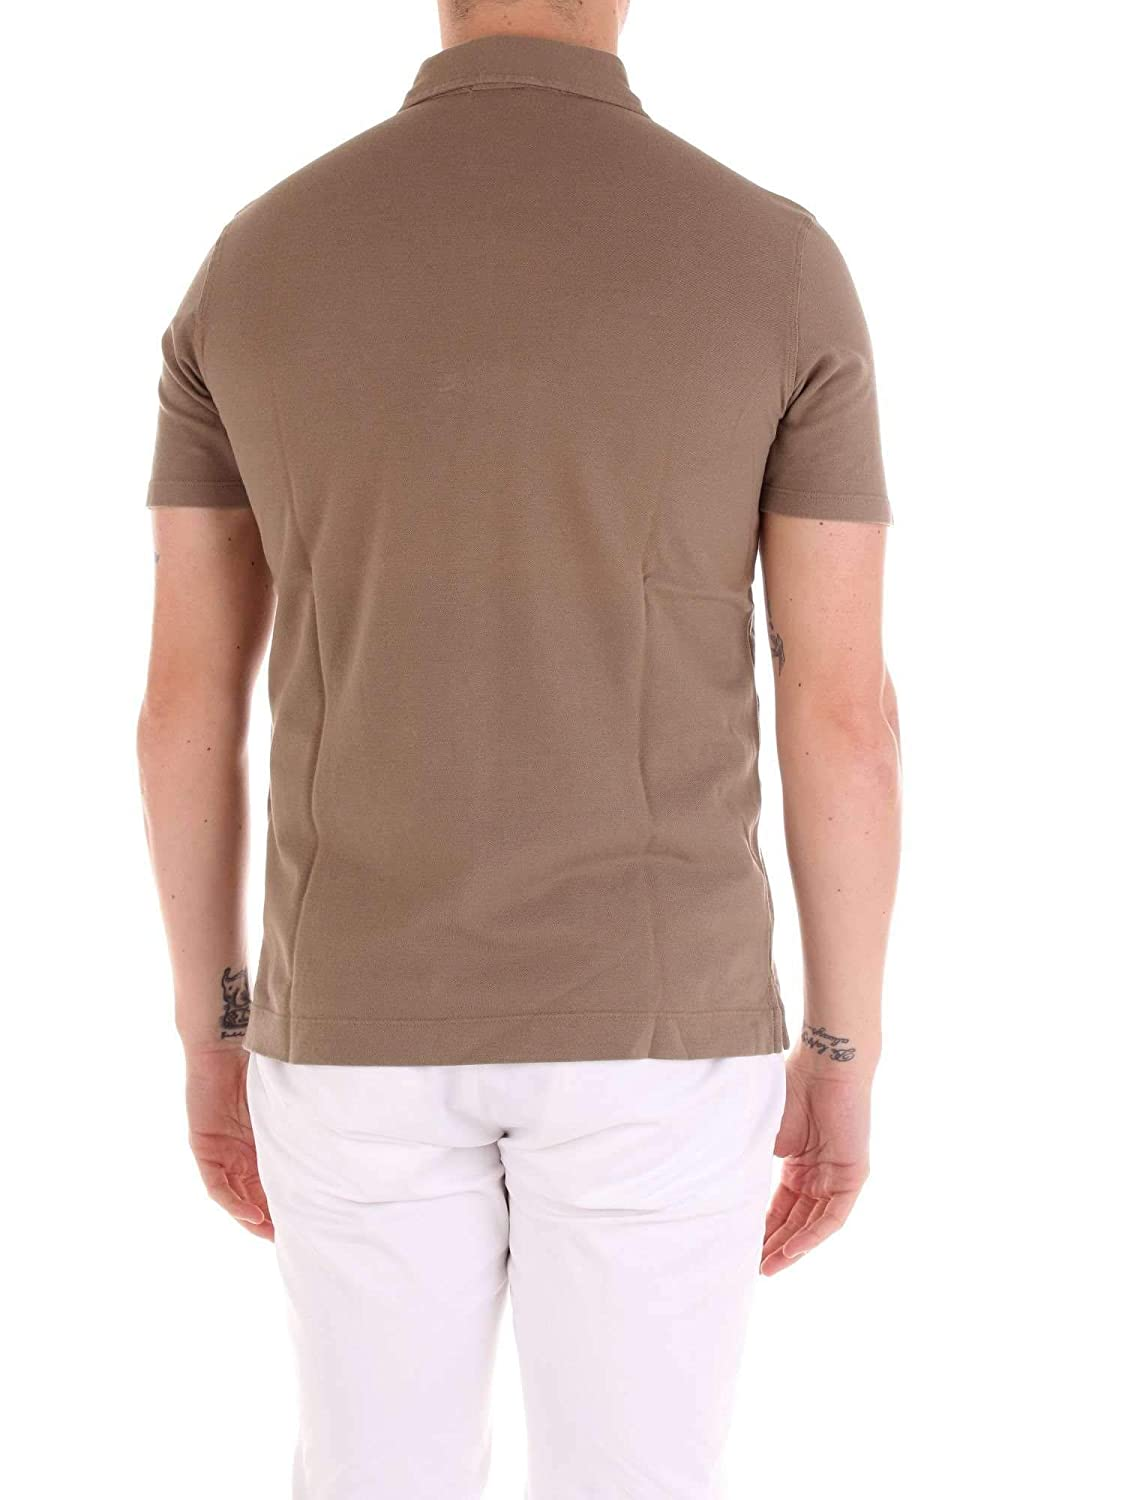 wholesale dealer a0f98 01c51 CRUCIANI Men's CUJKPC30FANGO Brown Cotton Polo Shirt at ...